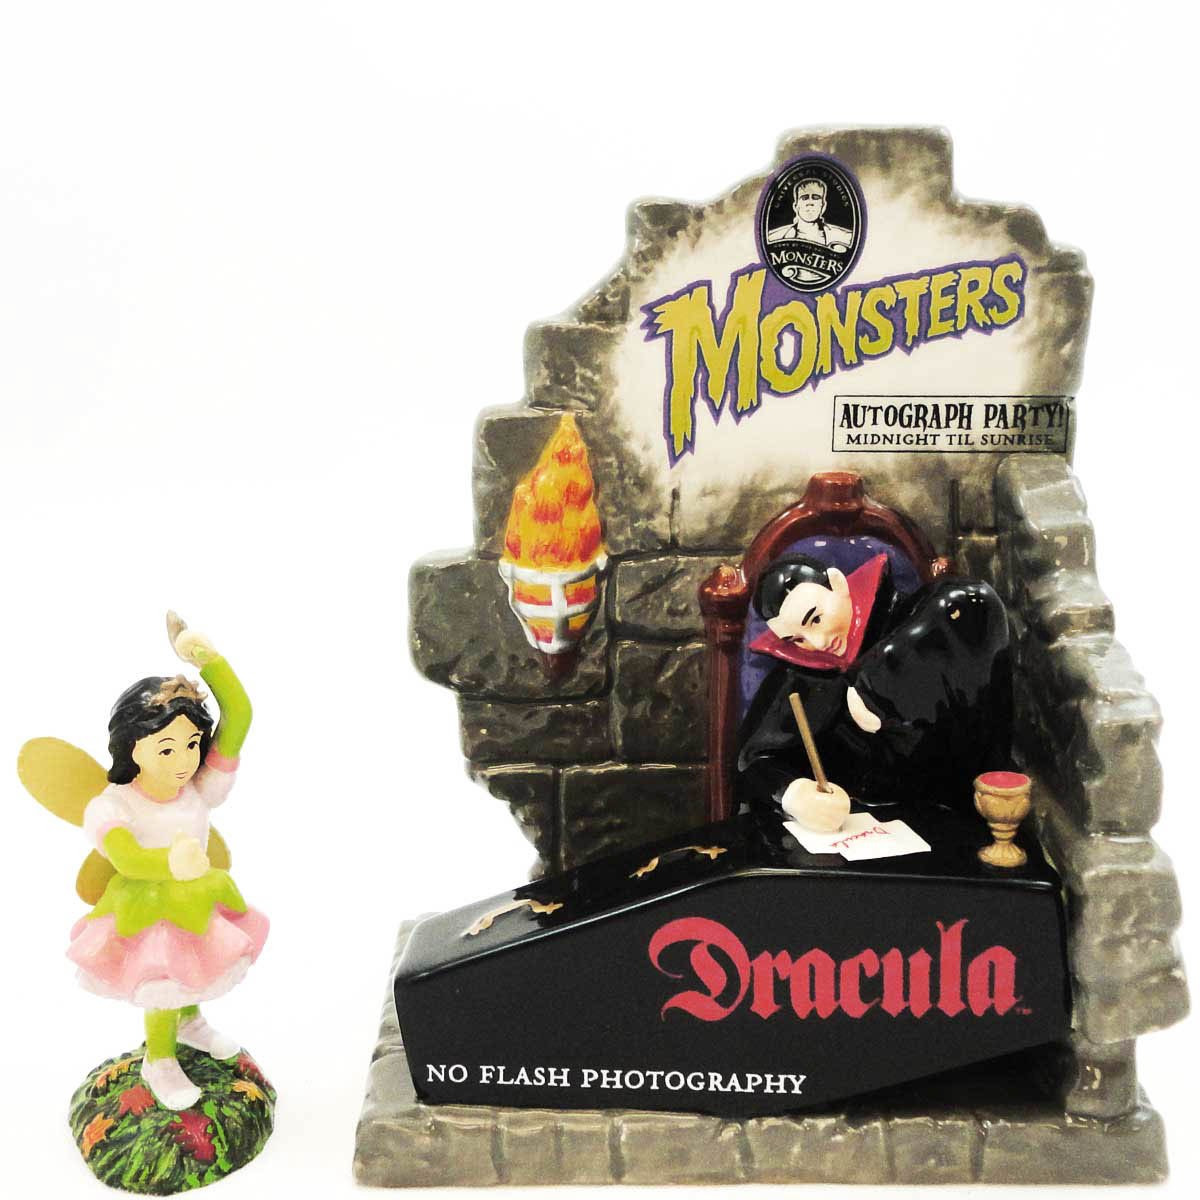 Dept 56 Accessories AUTOGRAPHS WITH DRACULA 799977 Halloween Snow Village Fairy